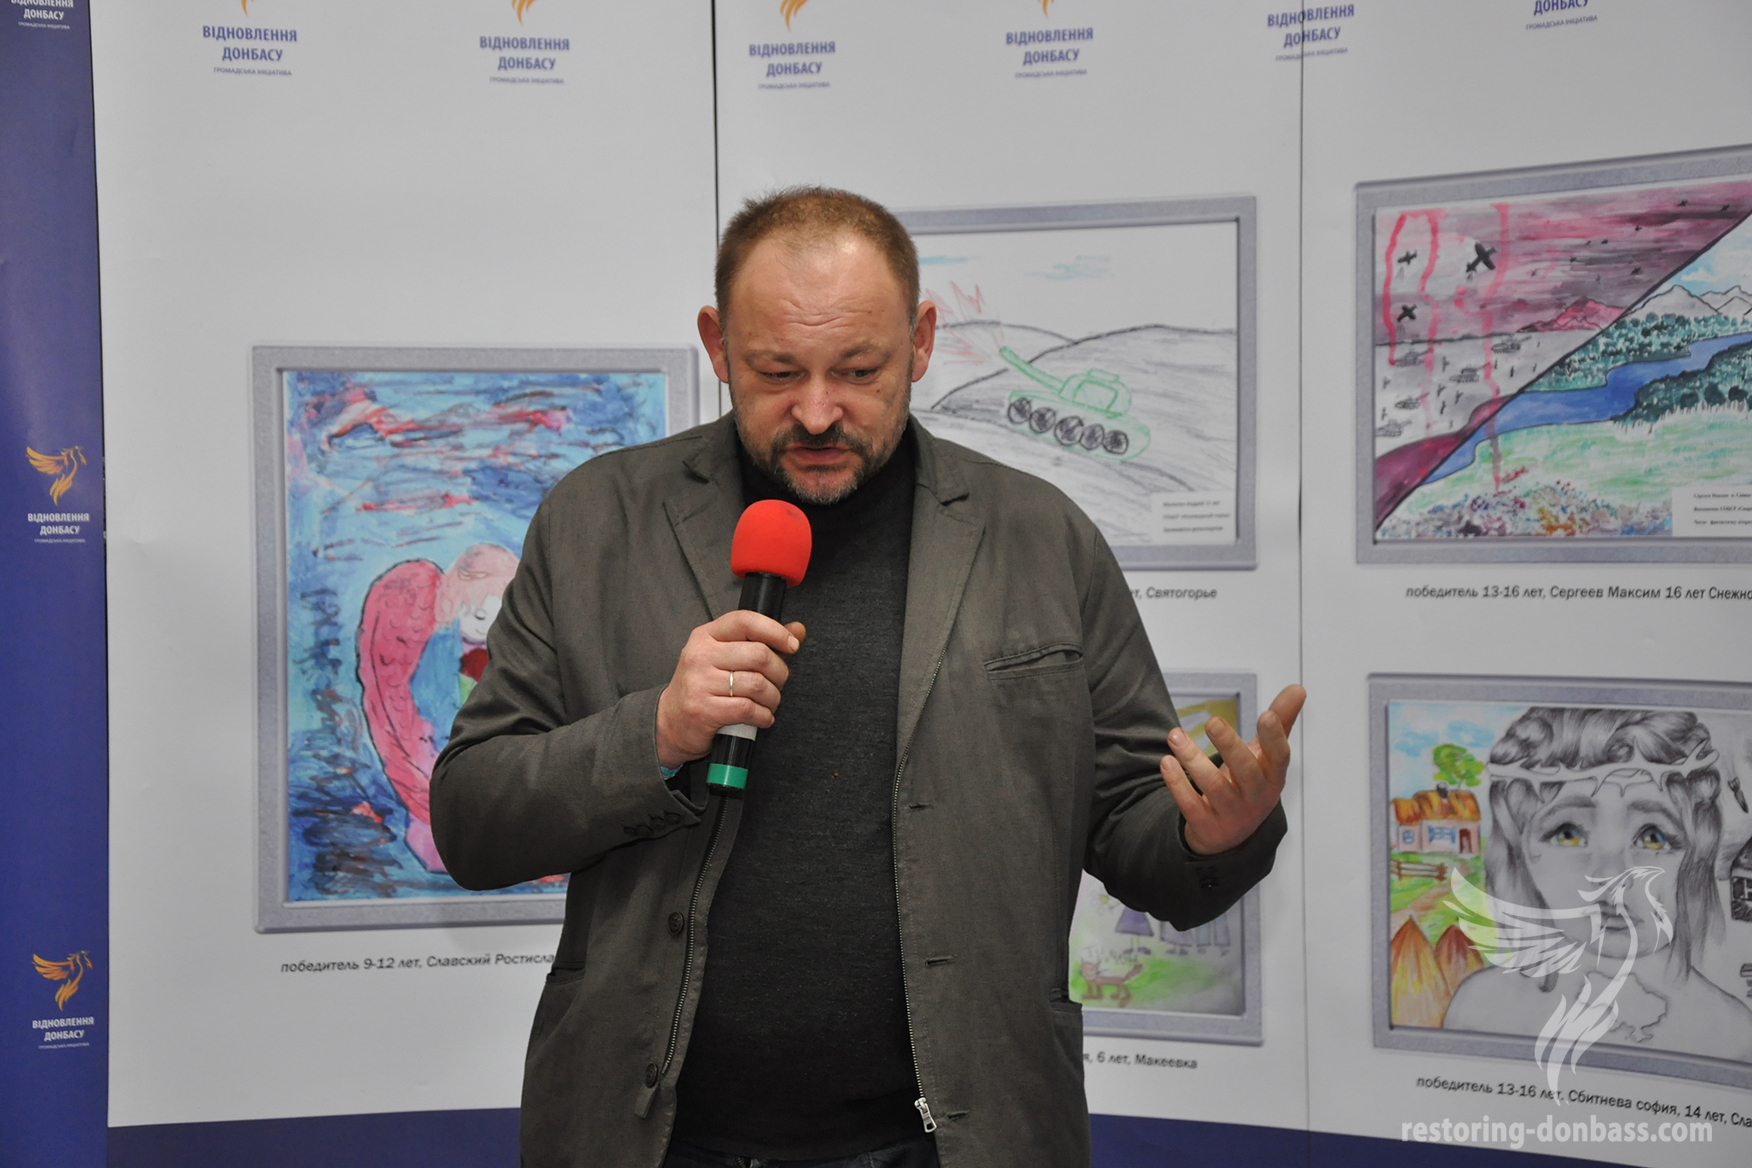 Director of the National museum of Taras Shevchenko Dmitry Stus at the Kramatorsk exhibition